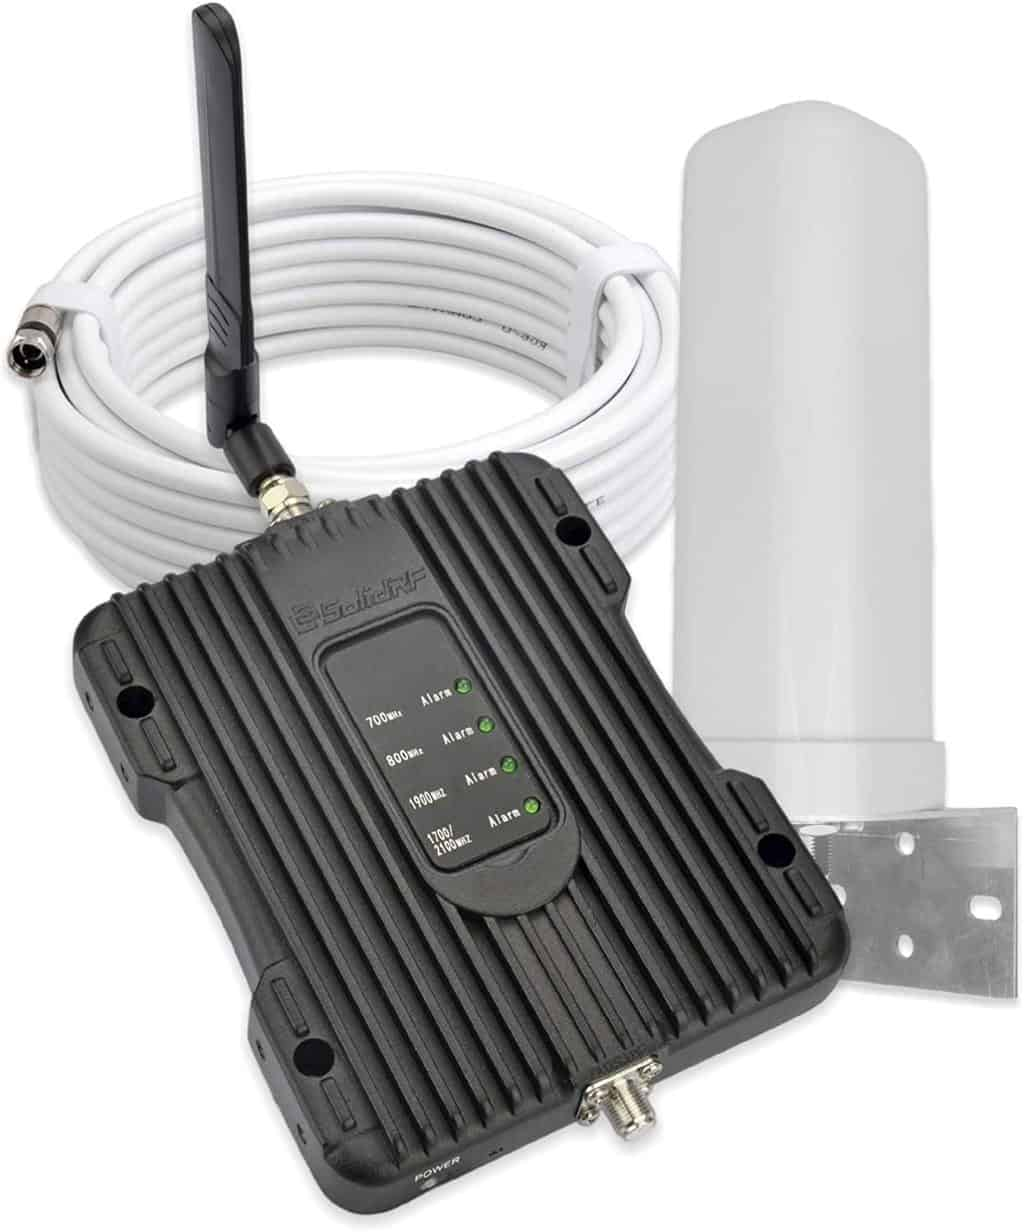 SolidRF 4G Cell Phone Signal Booster